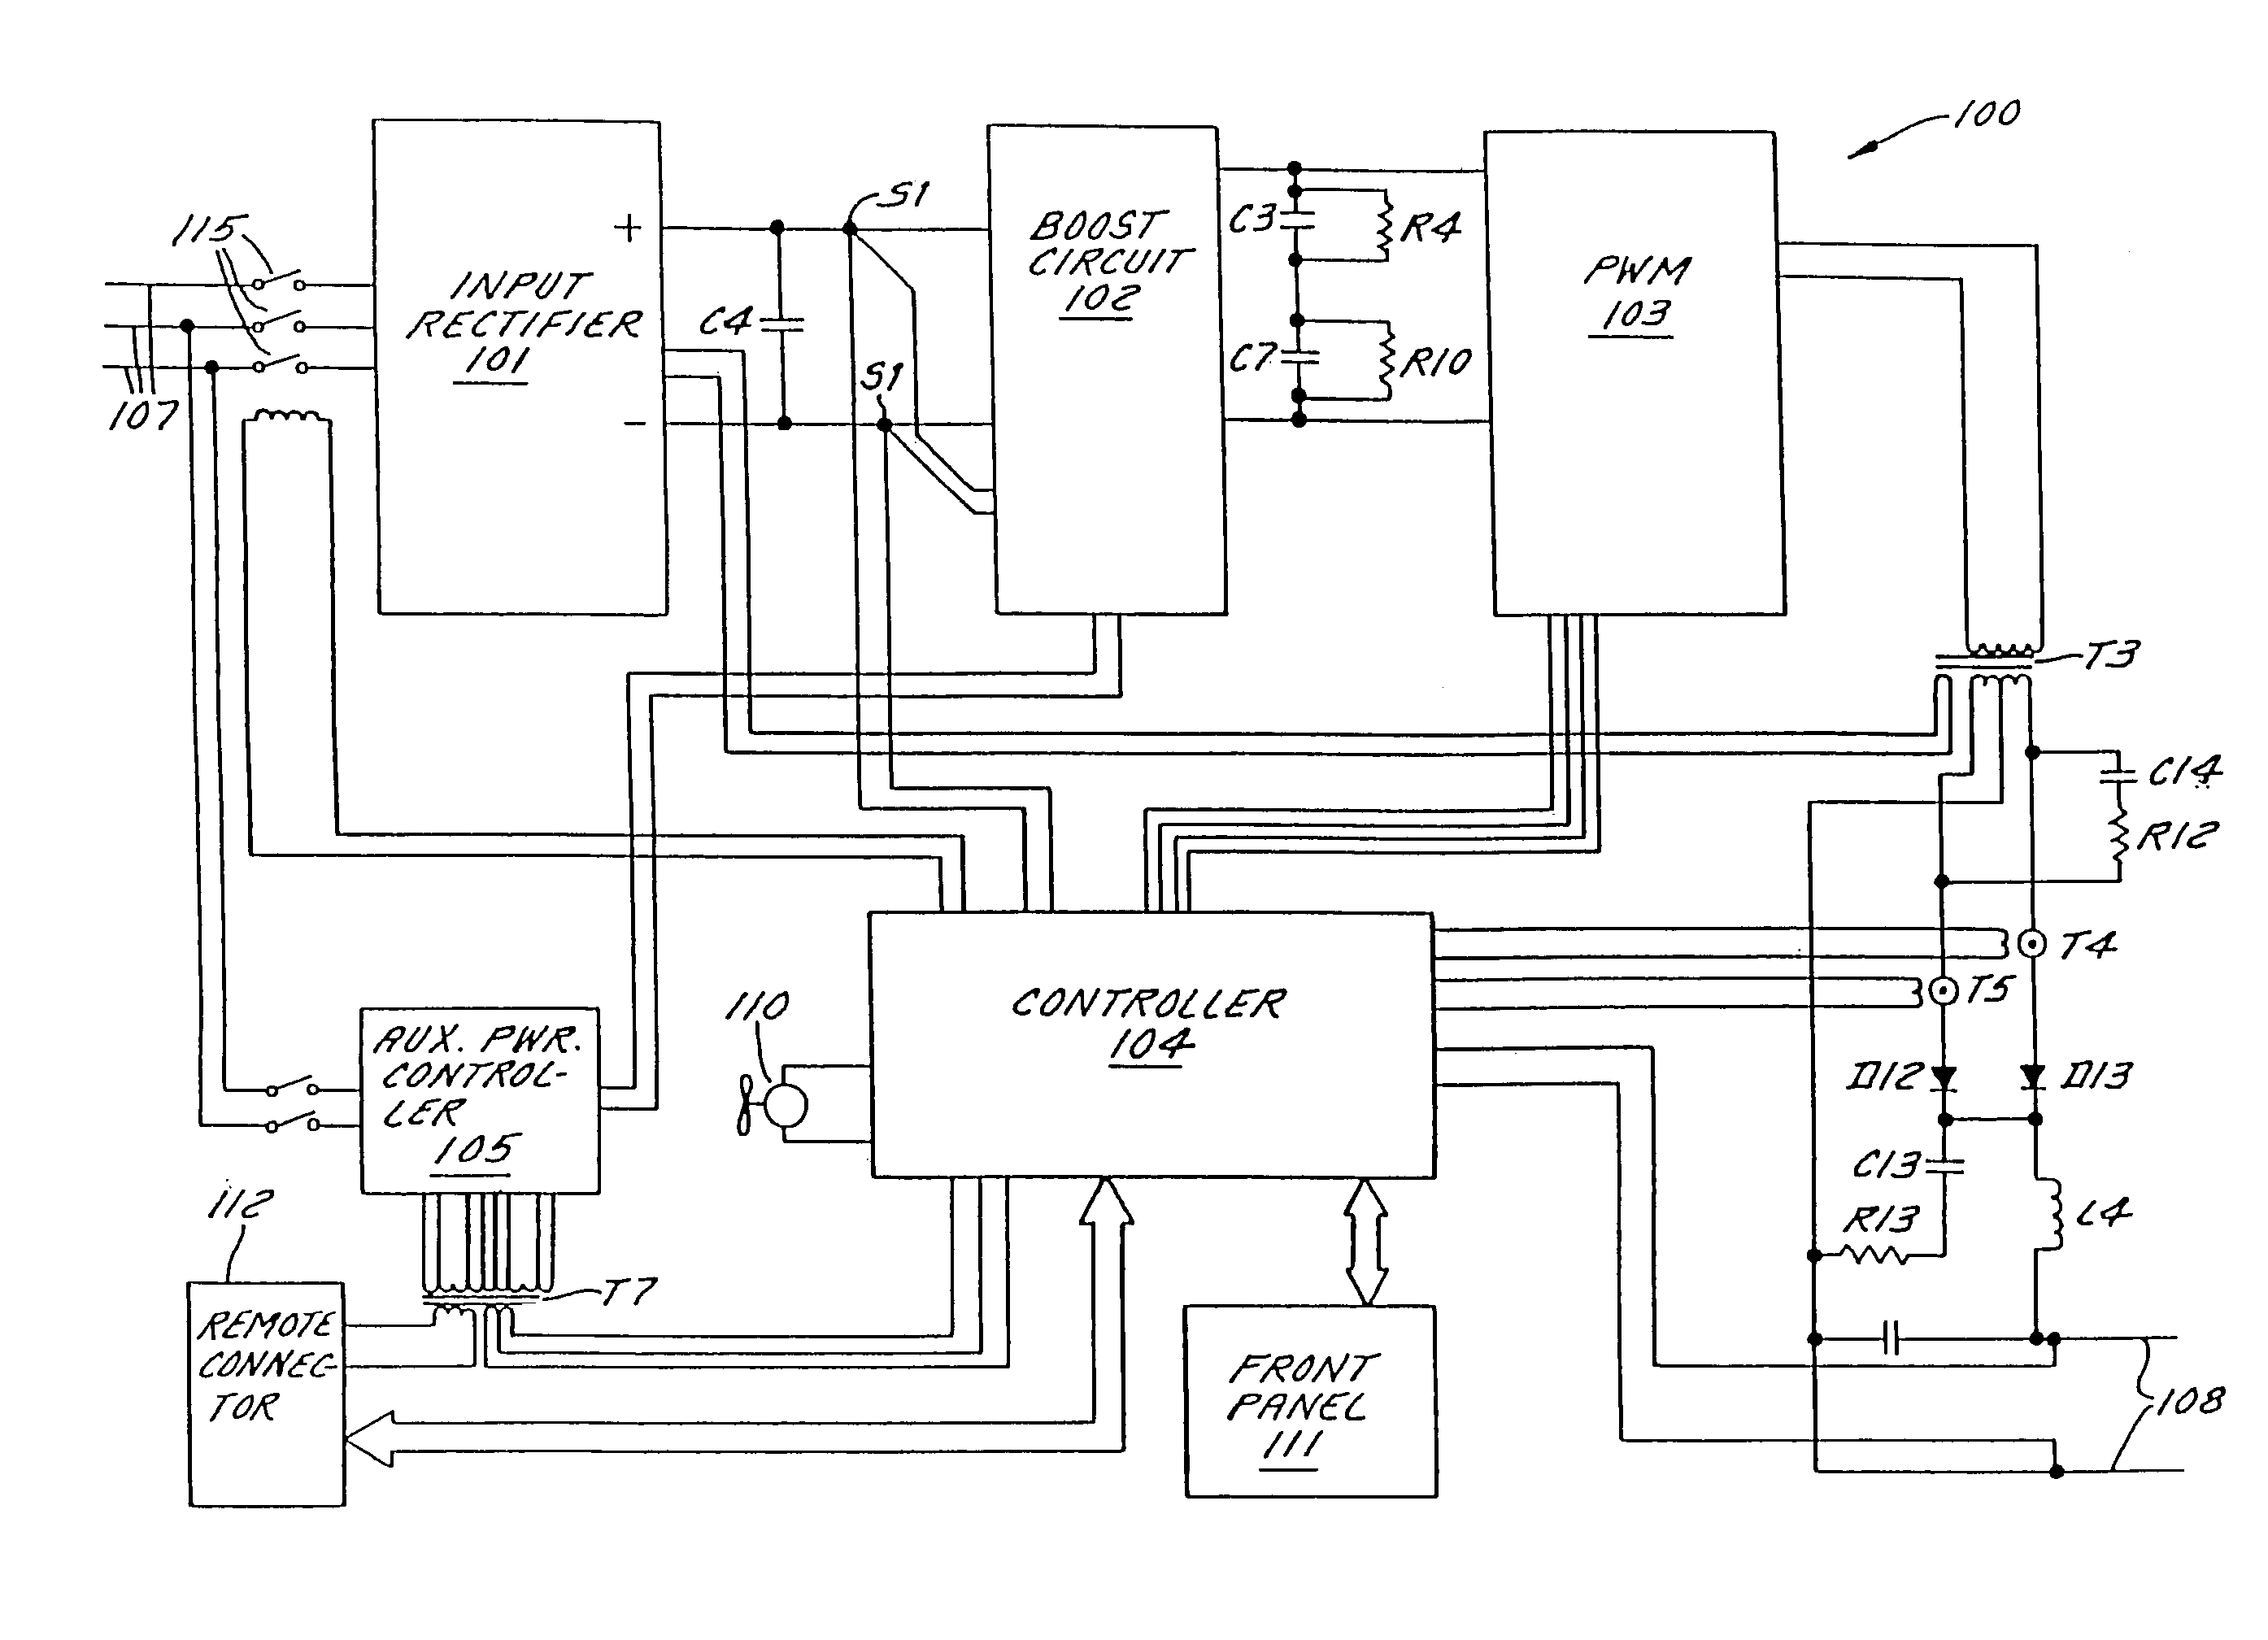 lincoln sa 200 wiring diagram single phase compressor patent us7319206 method and apparatus for receiving a